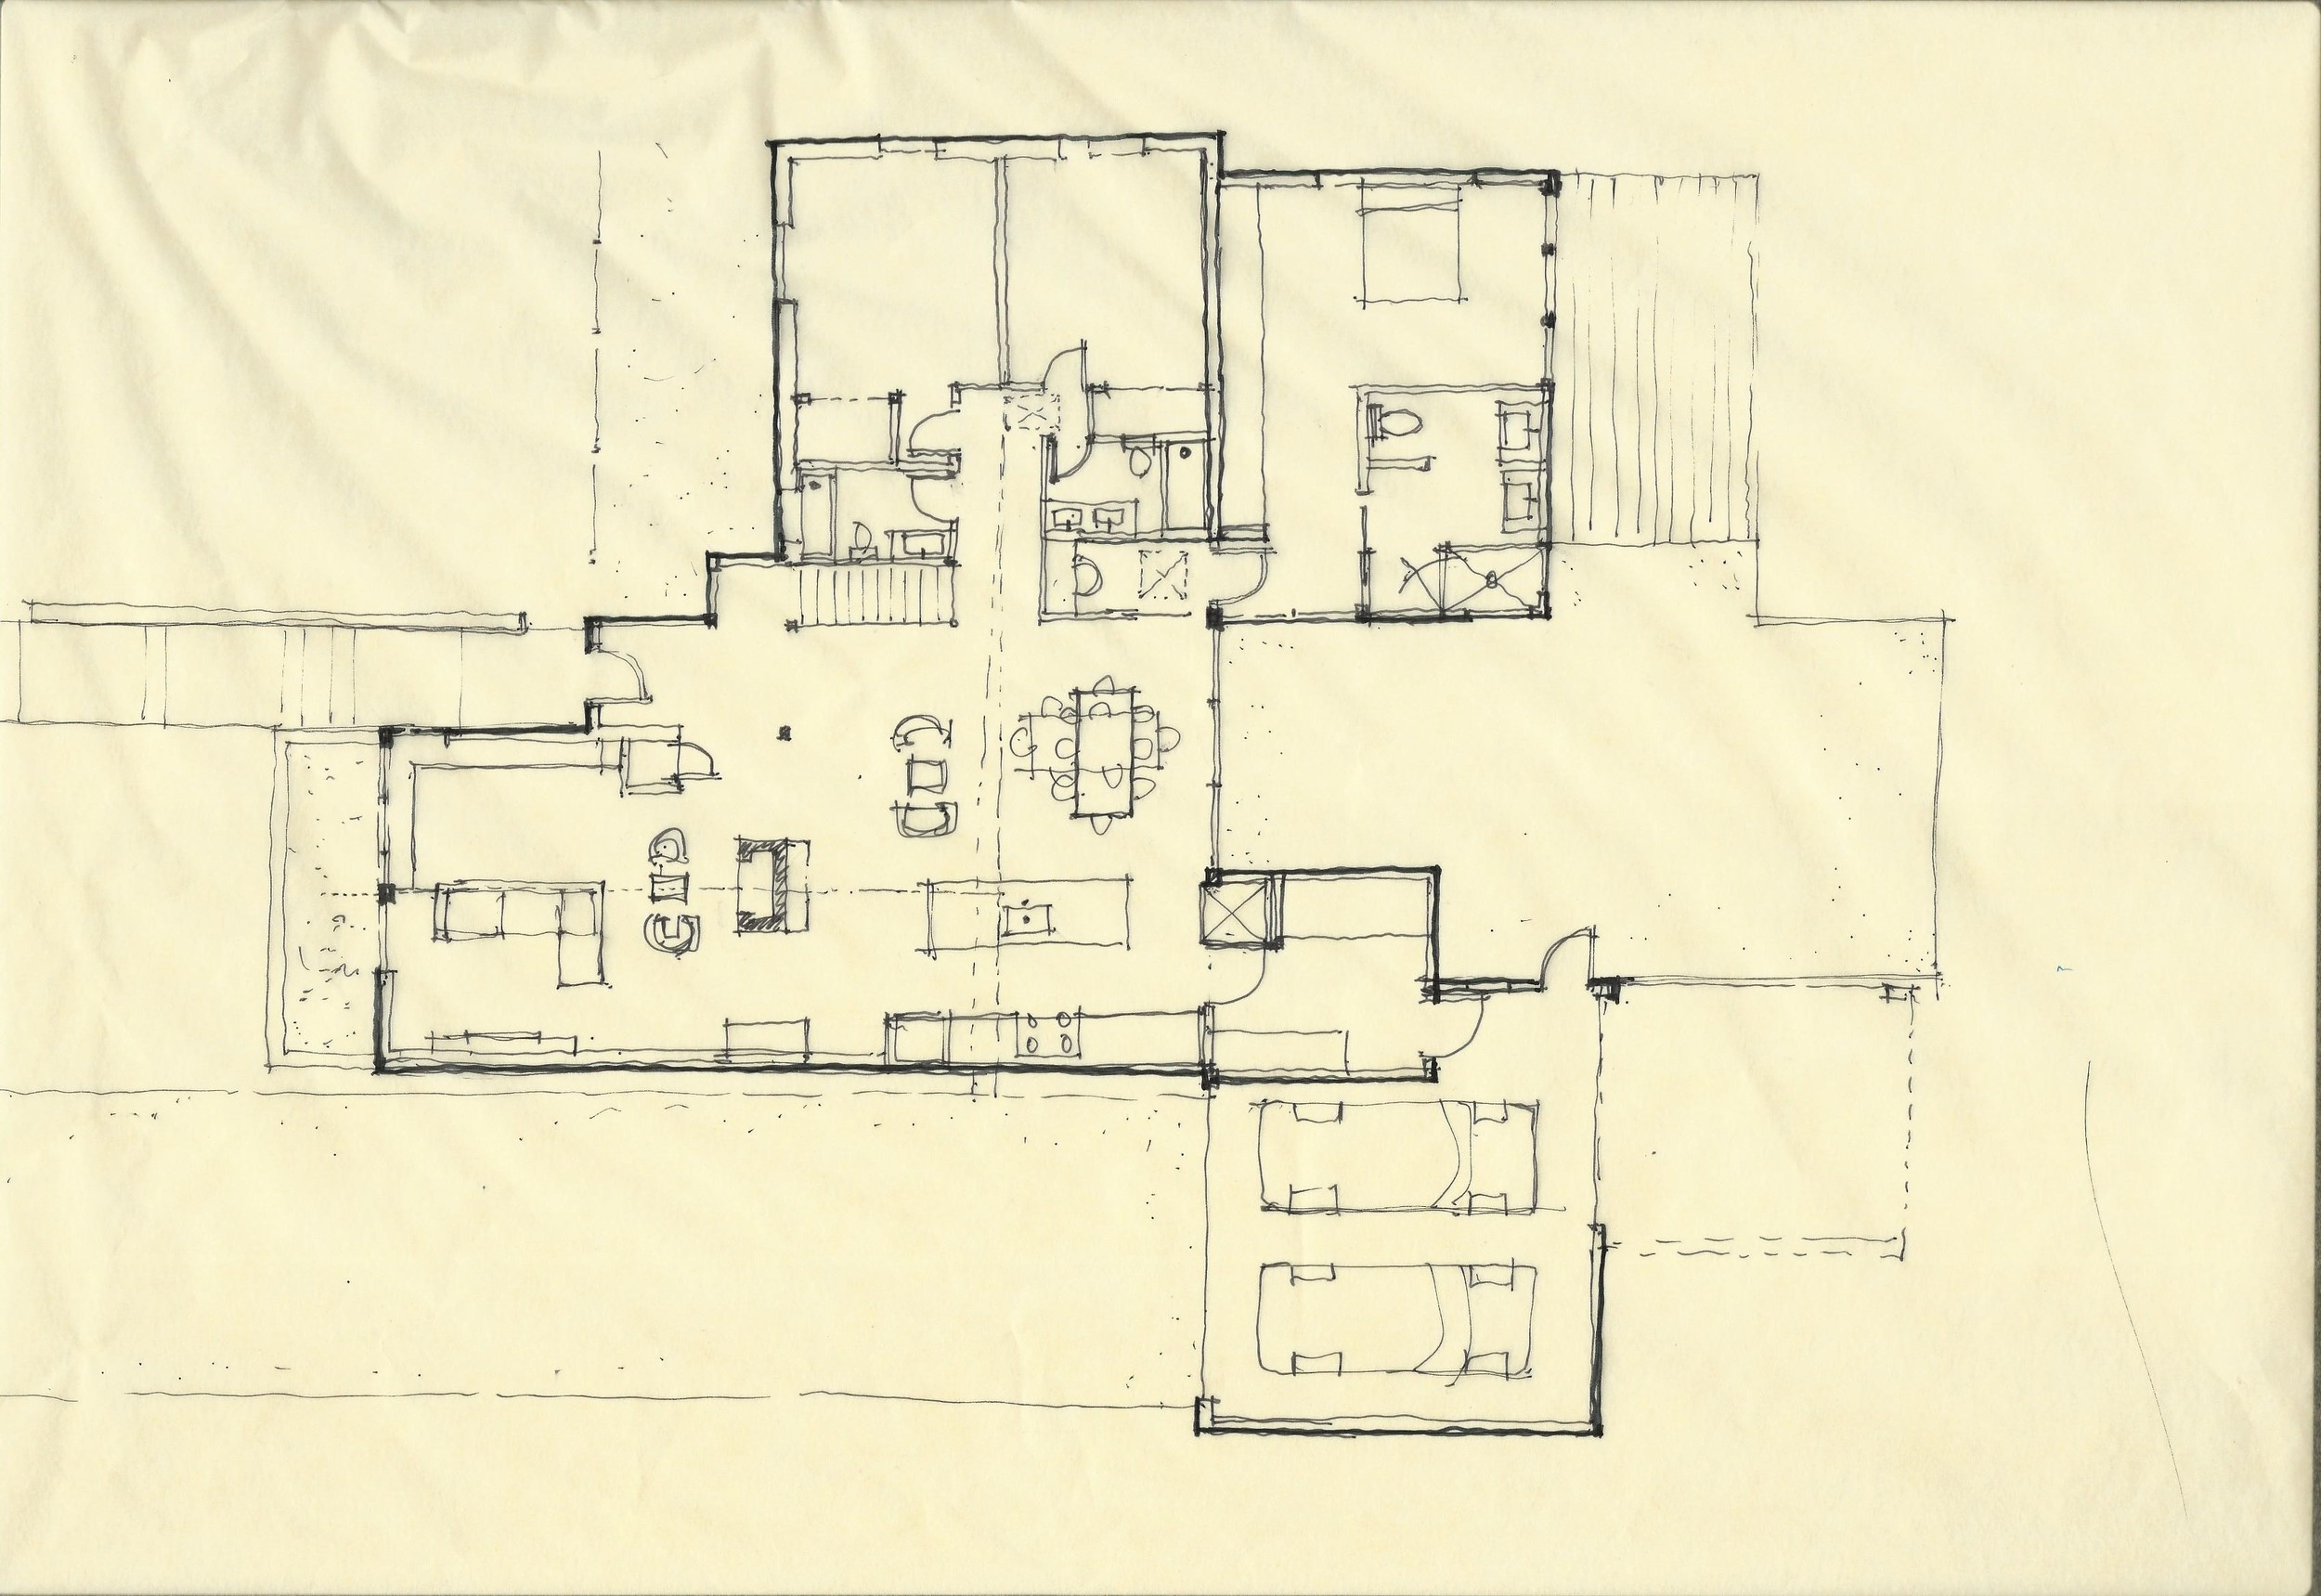 H-D Floor Plan Sketch.jpg